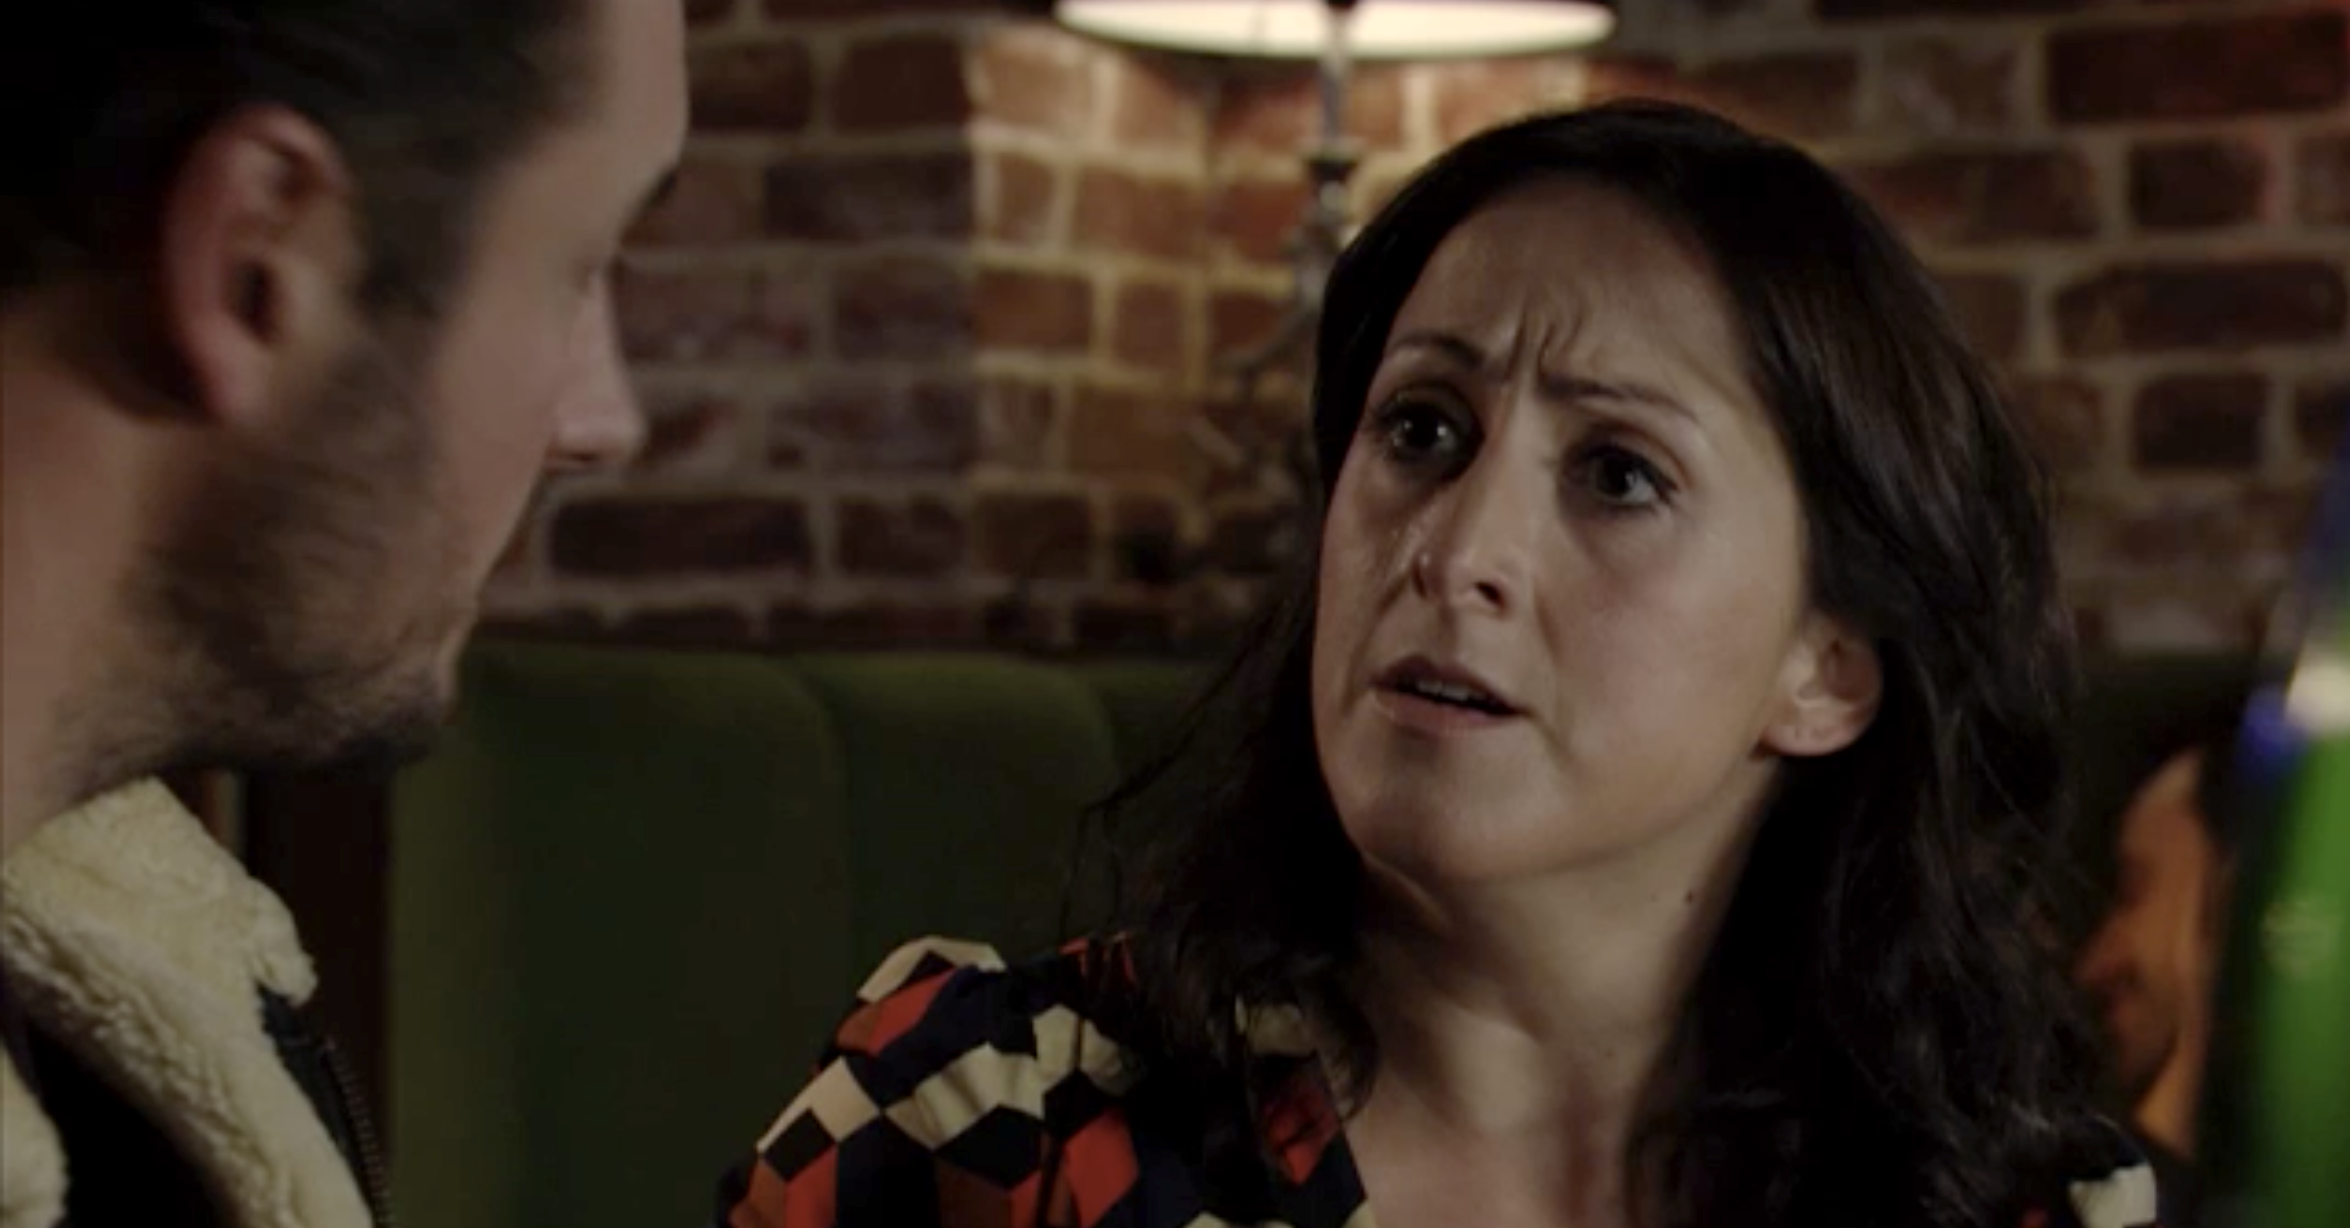 EastEnders' Sonia Fowler gets shock over Dot's theft and Martin rejection